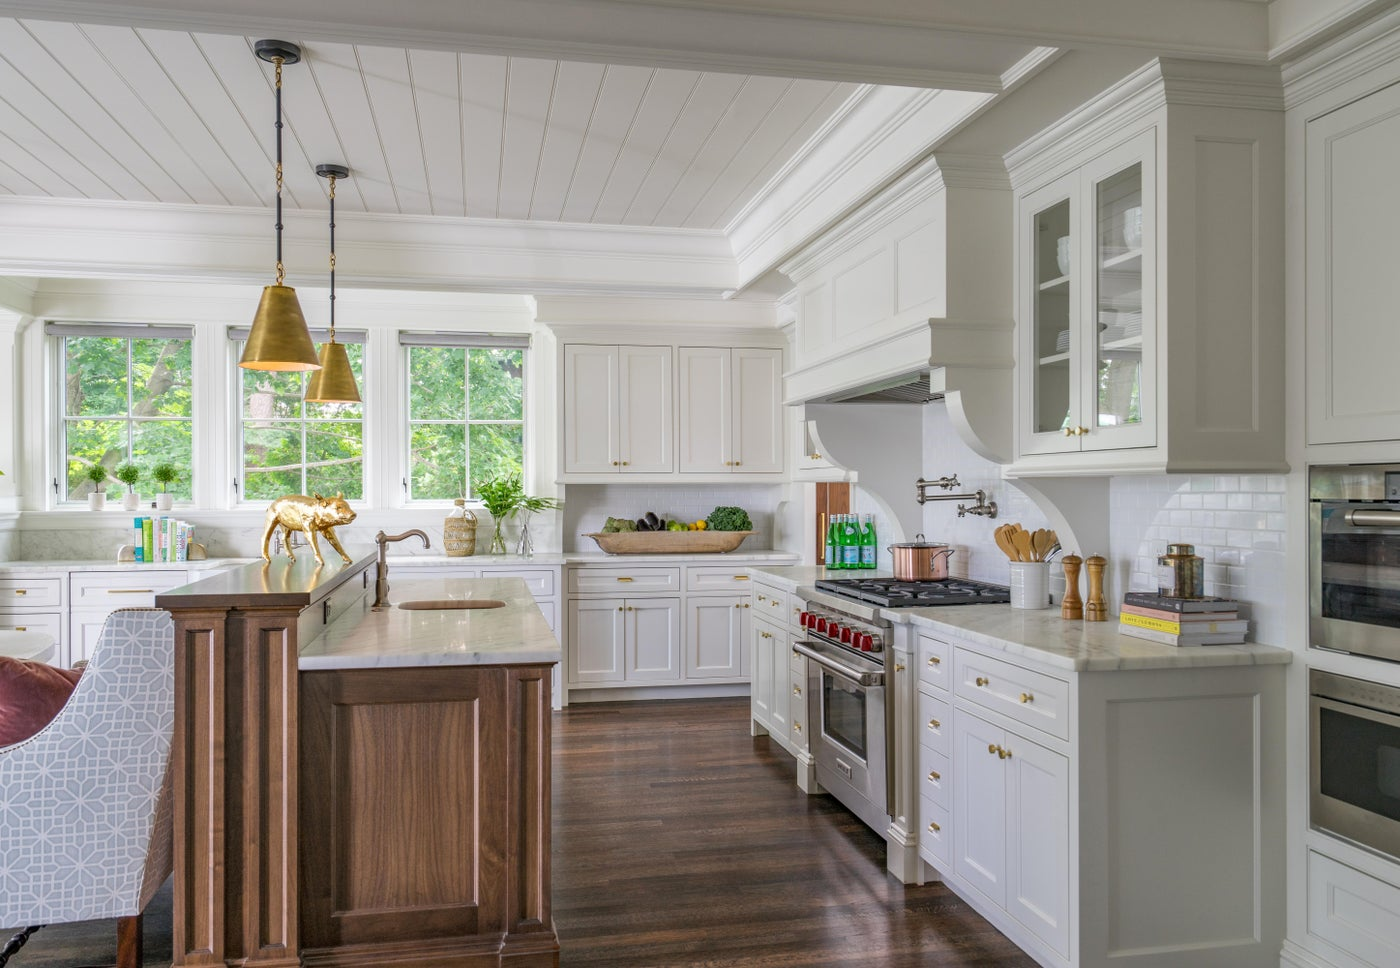 Kitchen with Subway Tile, Marble Counter Tops, Brass Hardware and Wood Flooring